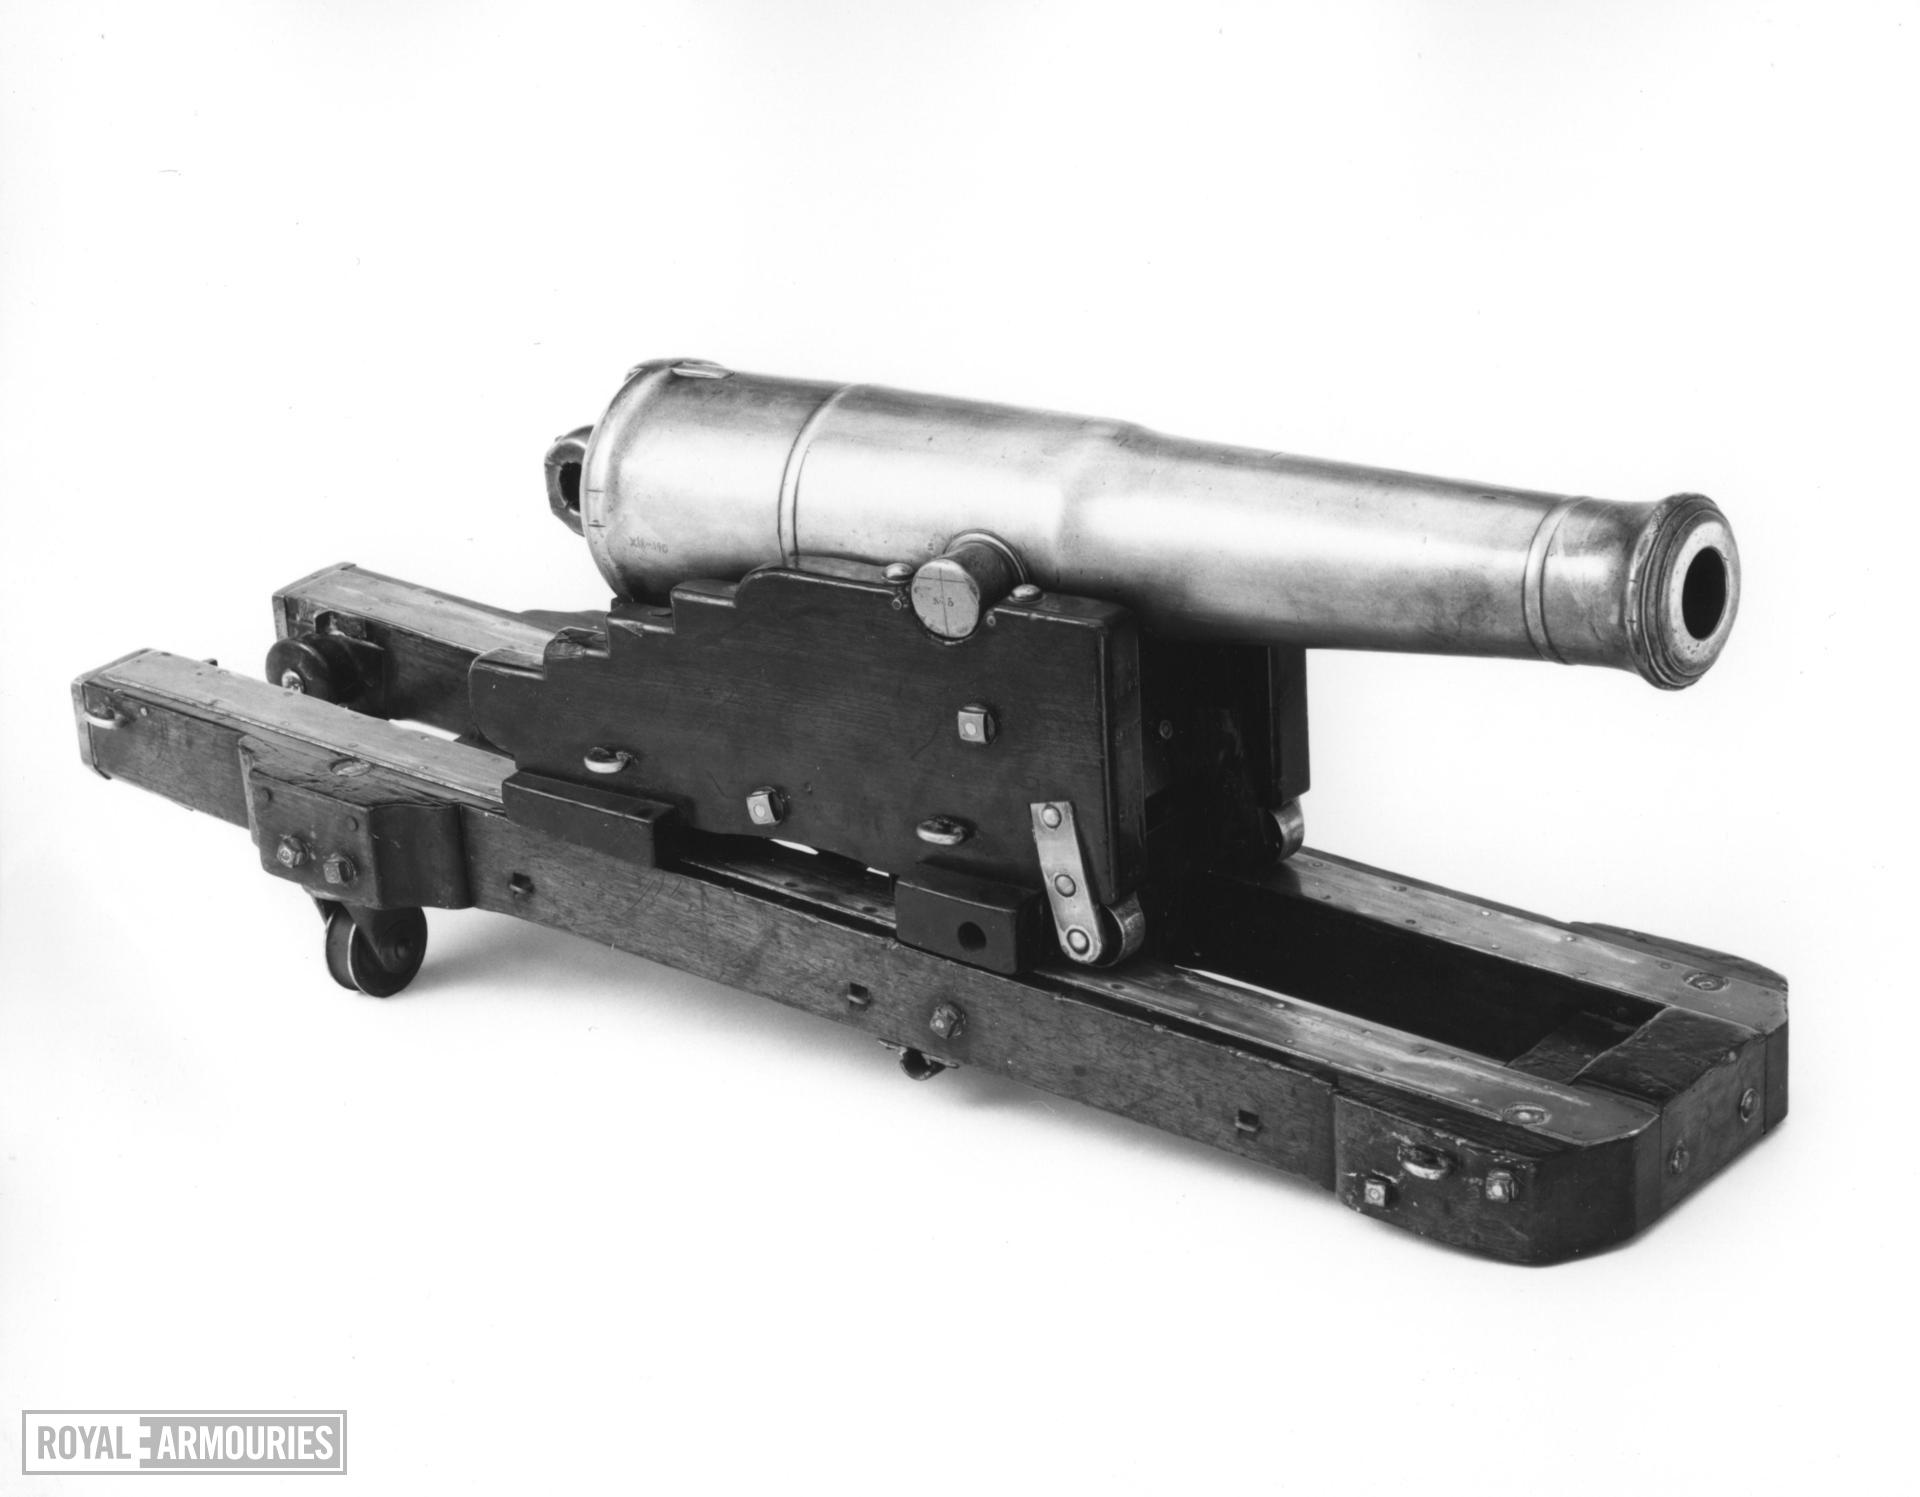 Model gun and carriage - Dundas Pattern With original carriage